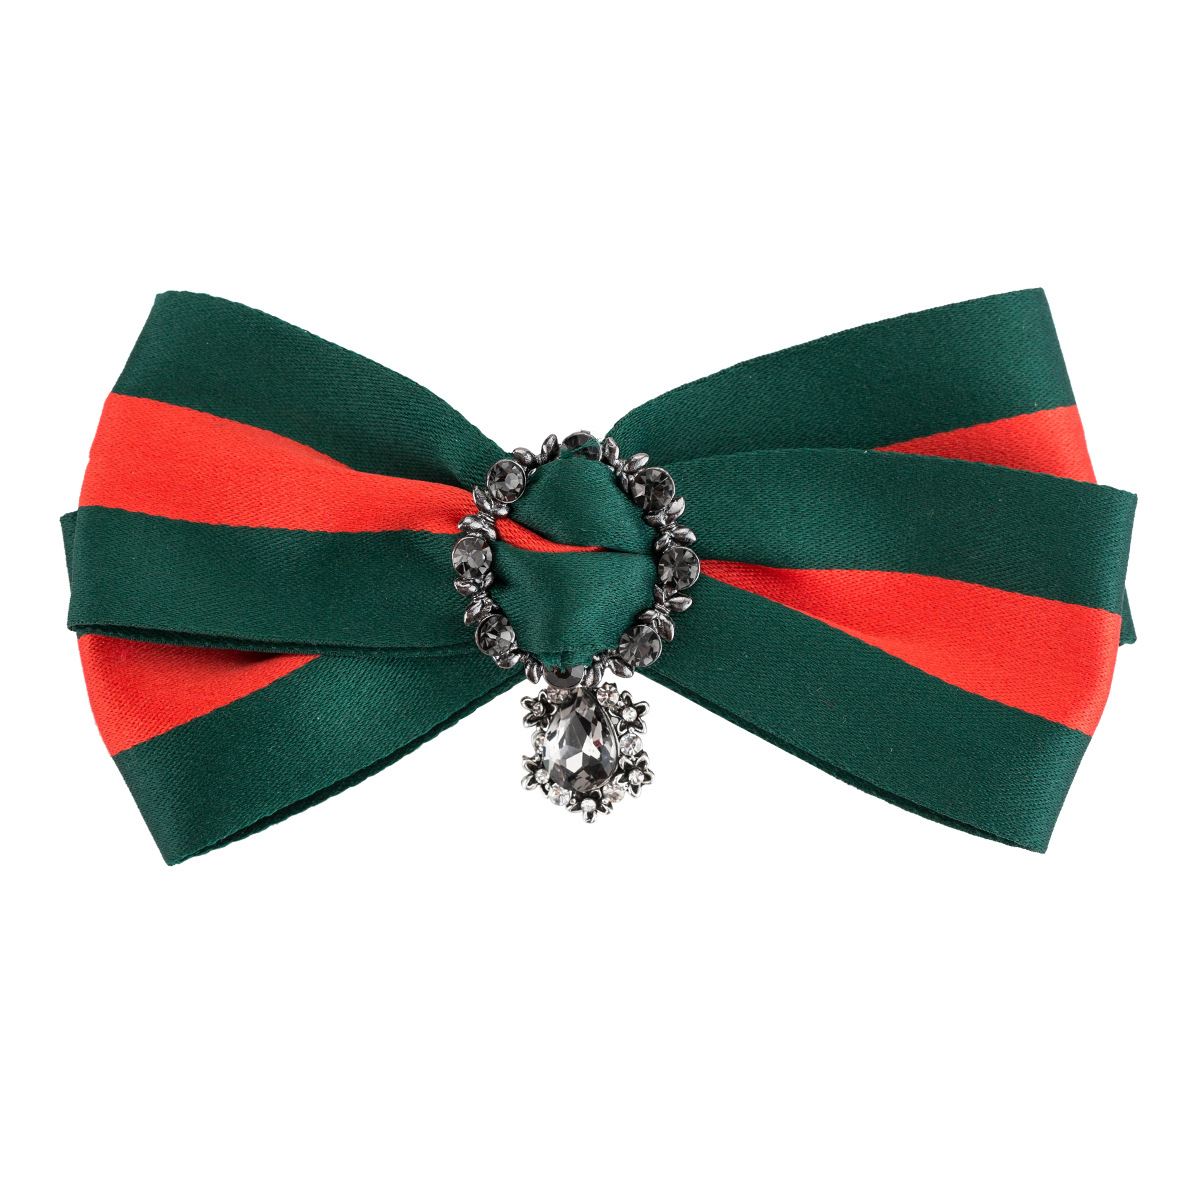 WENZHE Vintage Ladies Crystal Big Bow Ribbon Brooch Pin Necktie Christmas DIY Accessories Featured Image